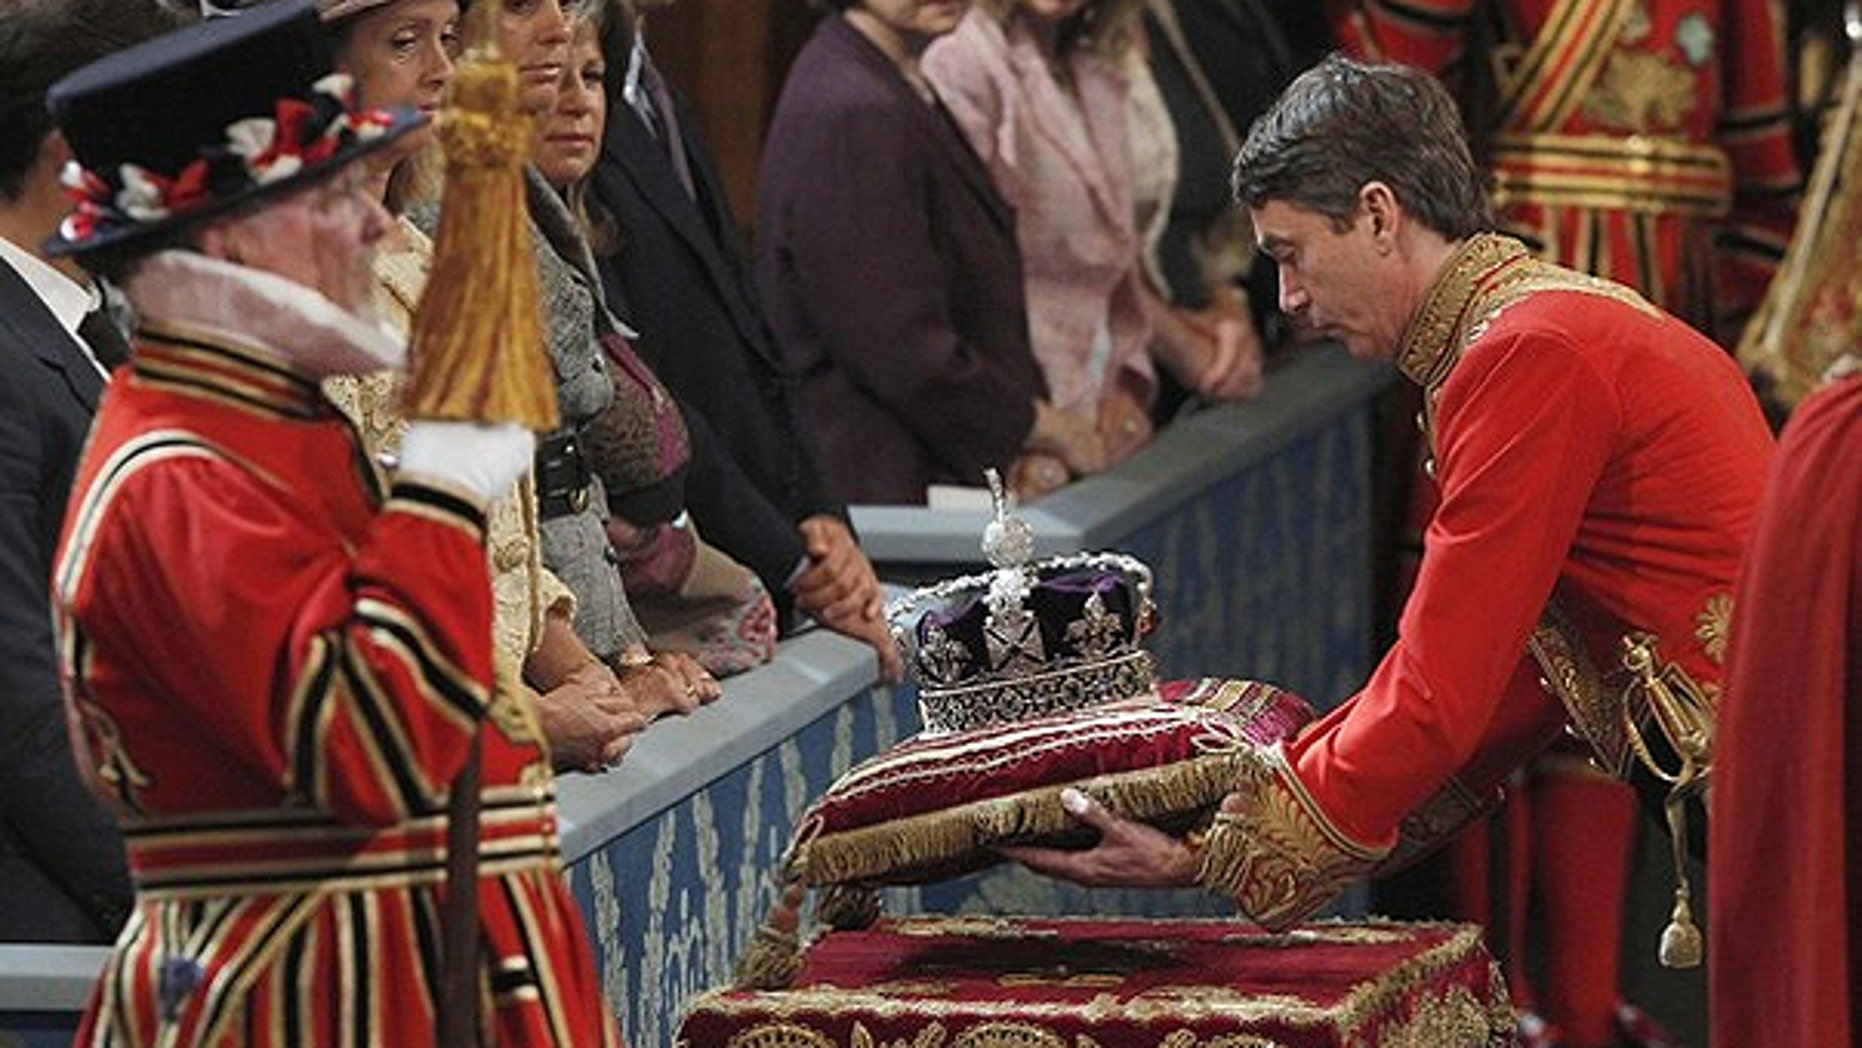 May 25, 2010: The Imperial State Crown is carried into the Royal Gallery for Britain's Queen Elizabeth during the State Opening of Parliament at the Palace of Westminster in London.